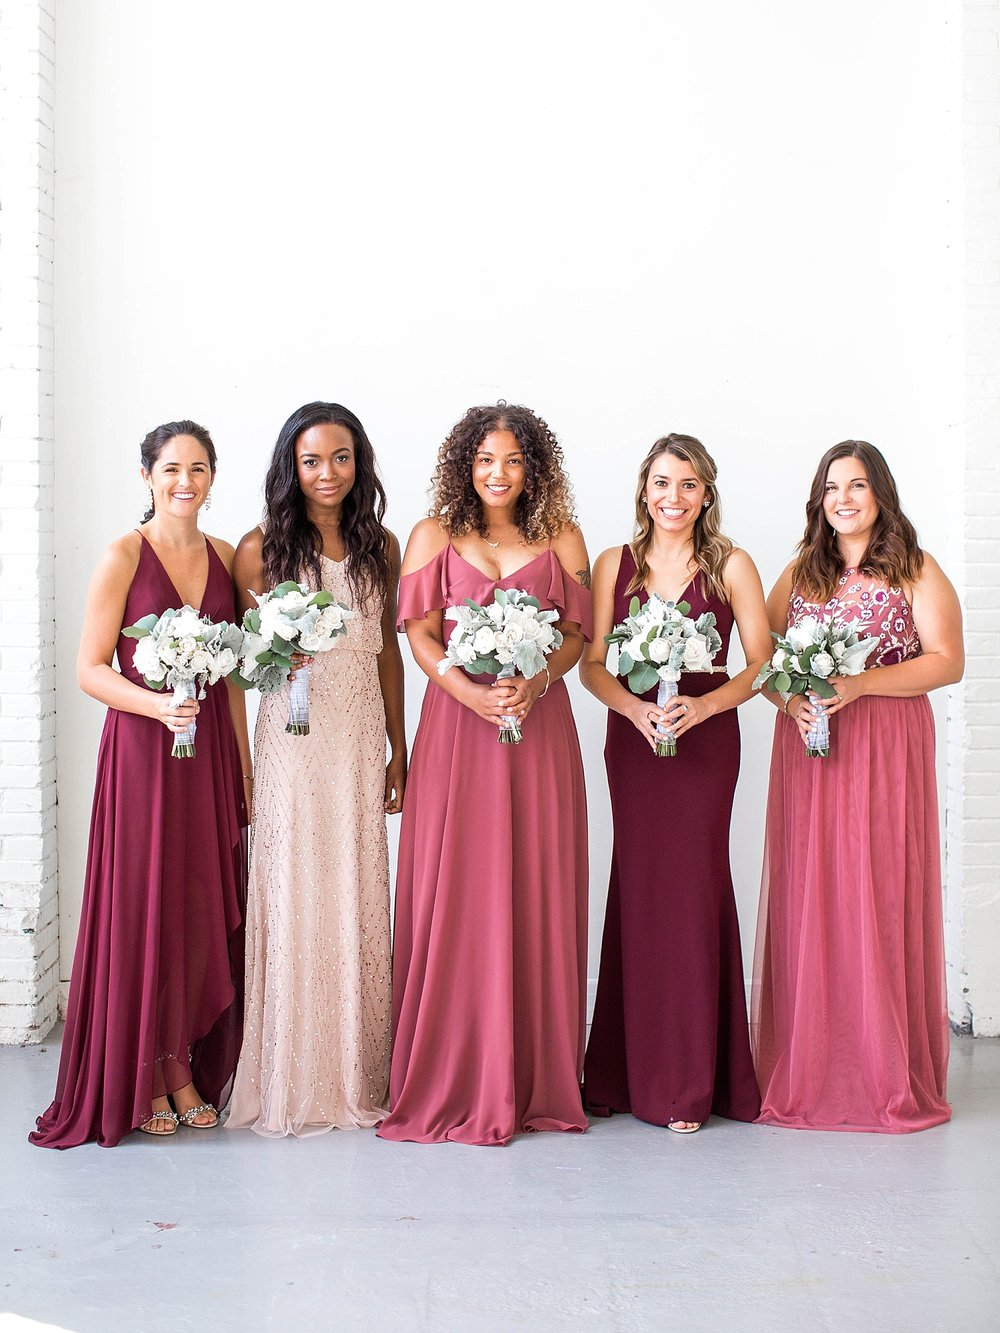 BHLDN Bridesmaids Dresses Campaign Philadelphia New Jersey Wedding Fashion Photography by Kelee Bovelle_0004.jpg